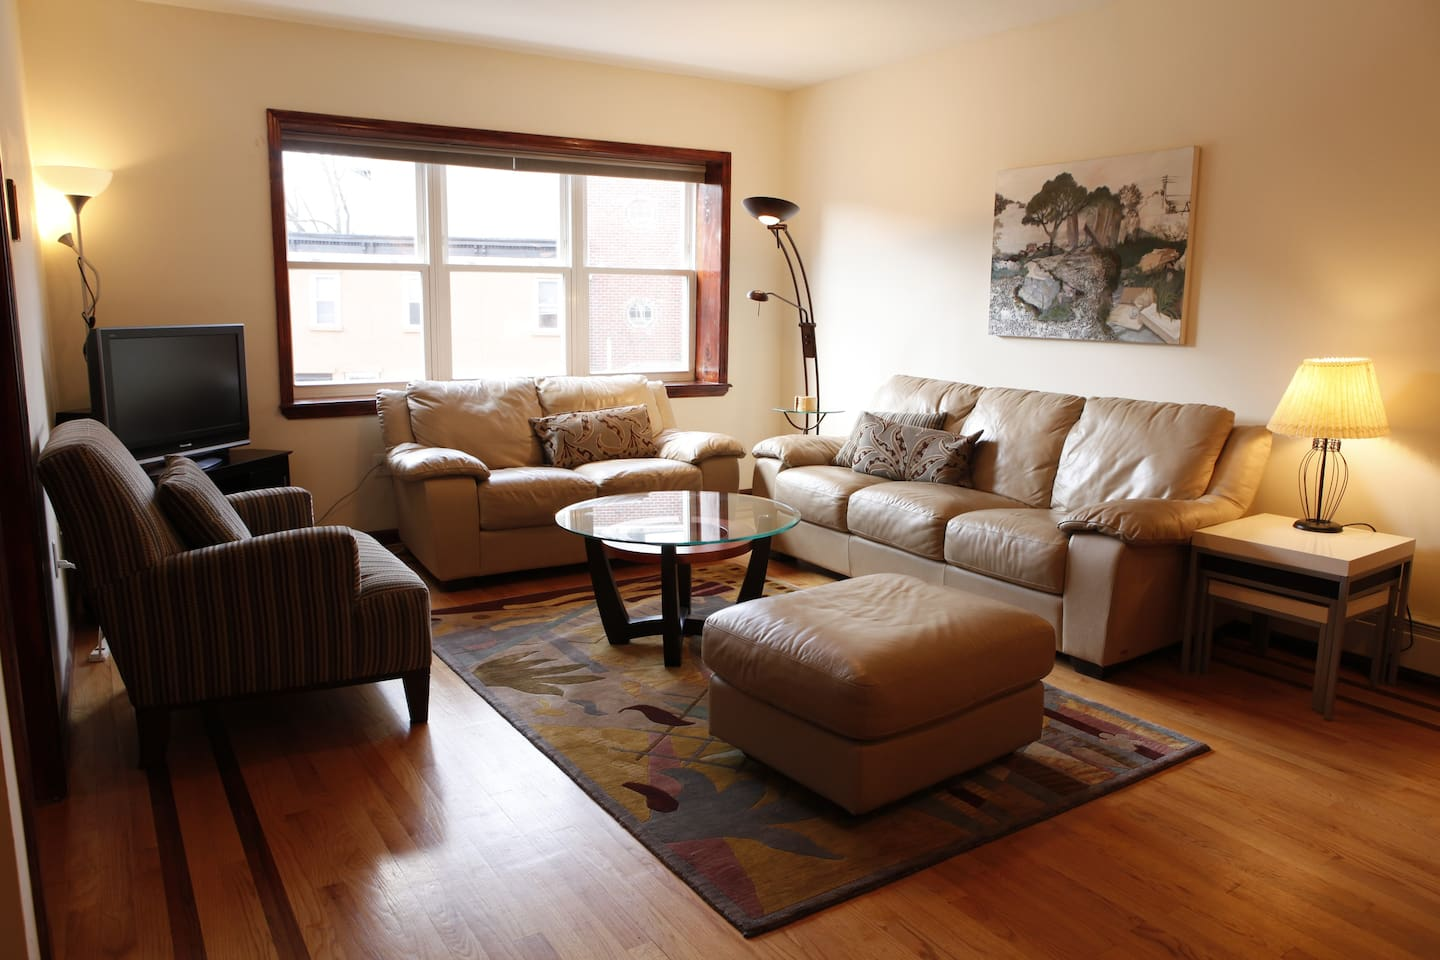 This is the Living Room. Nice light from the West-facing window, comfortable furniture, TV/Cable/DVD.